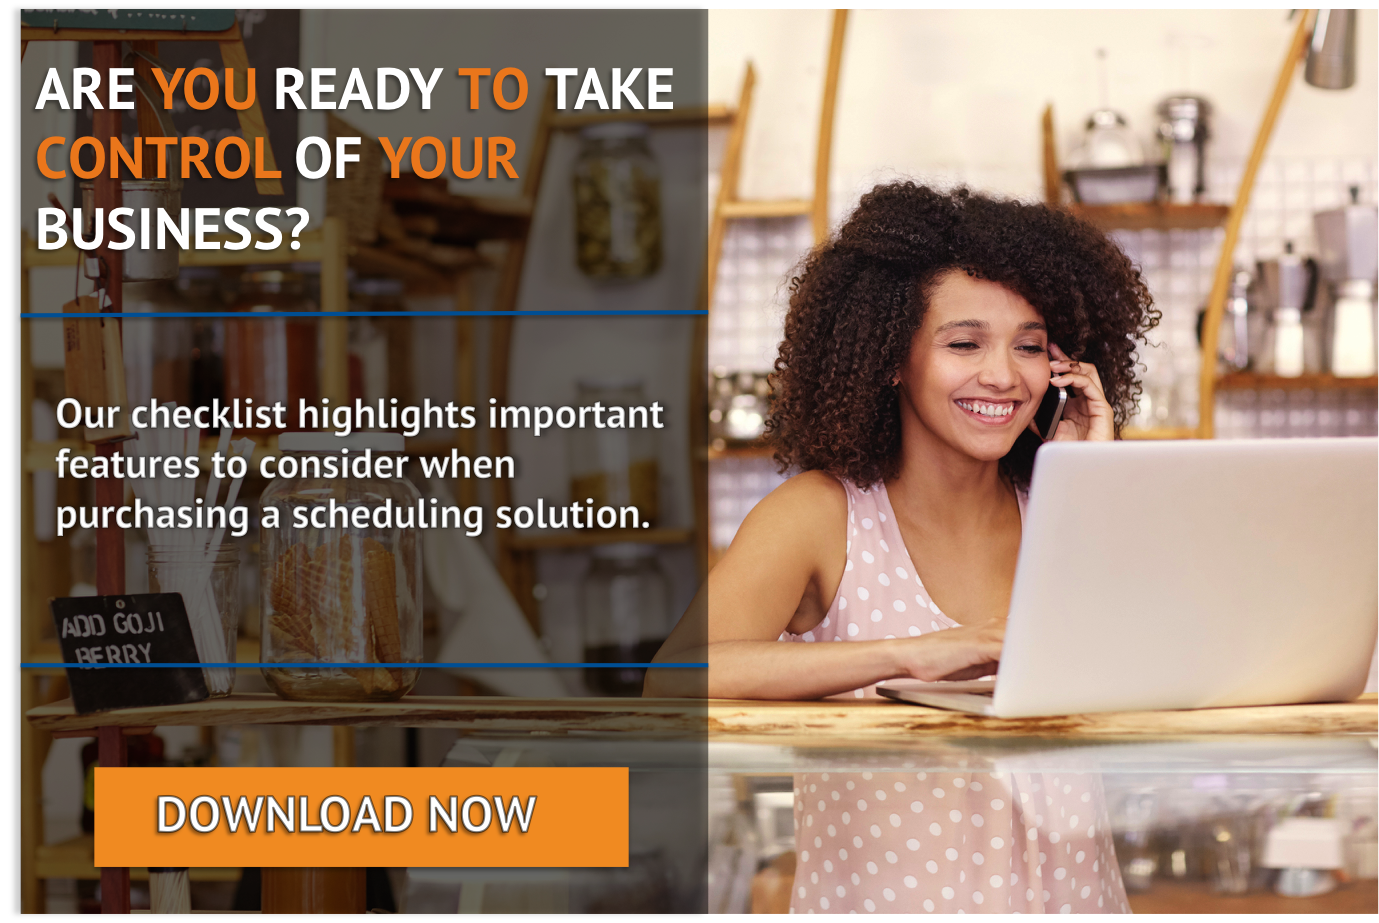 Our checklist highlights important features to consider when purchasing a scheduling solution.